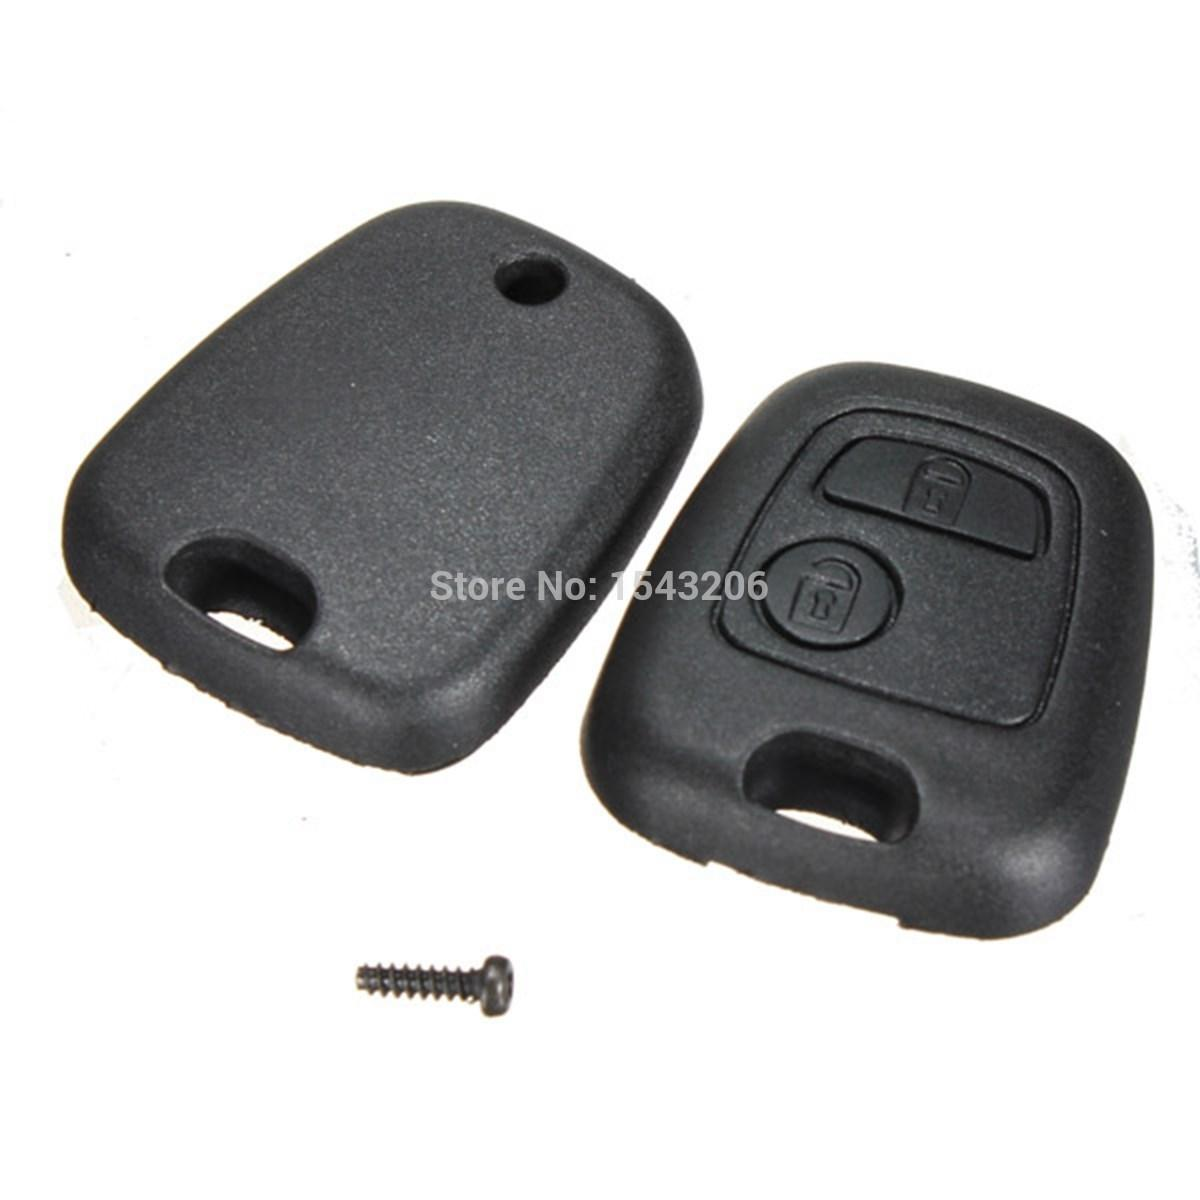 Remote Key Case Shell For Citroen C1 C2 C3 C4 XSARA Picasso Peugeot 107 207 307 407 106 206 306 406 order<$18no track